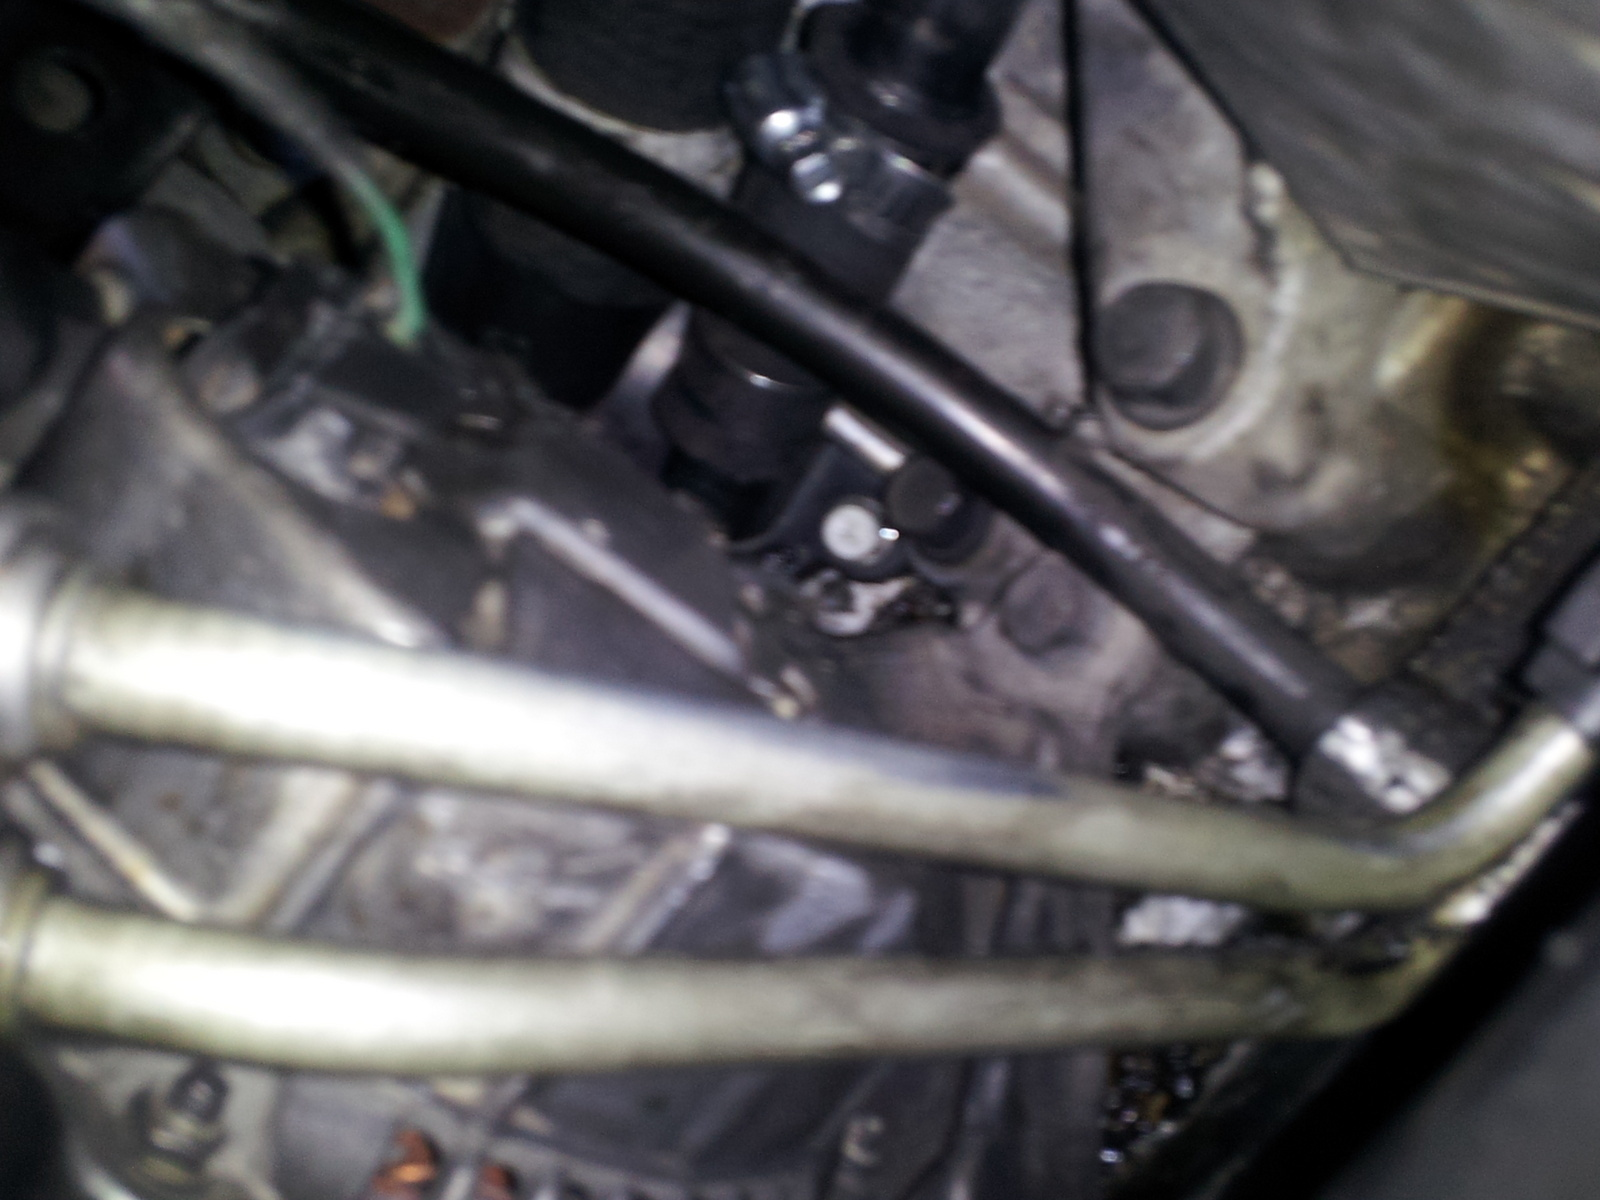 hight resolution of 2000 dodge intrepid serpentine belt routing and timing belt diagrams 2 7 engine have a little hole that keeps leaking coolant from the motor its